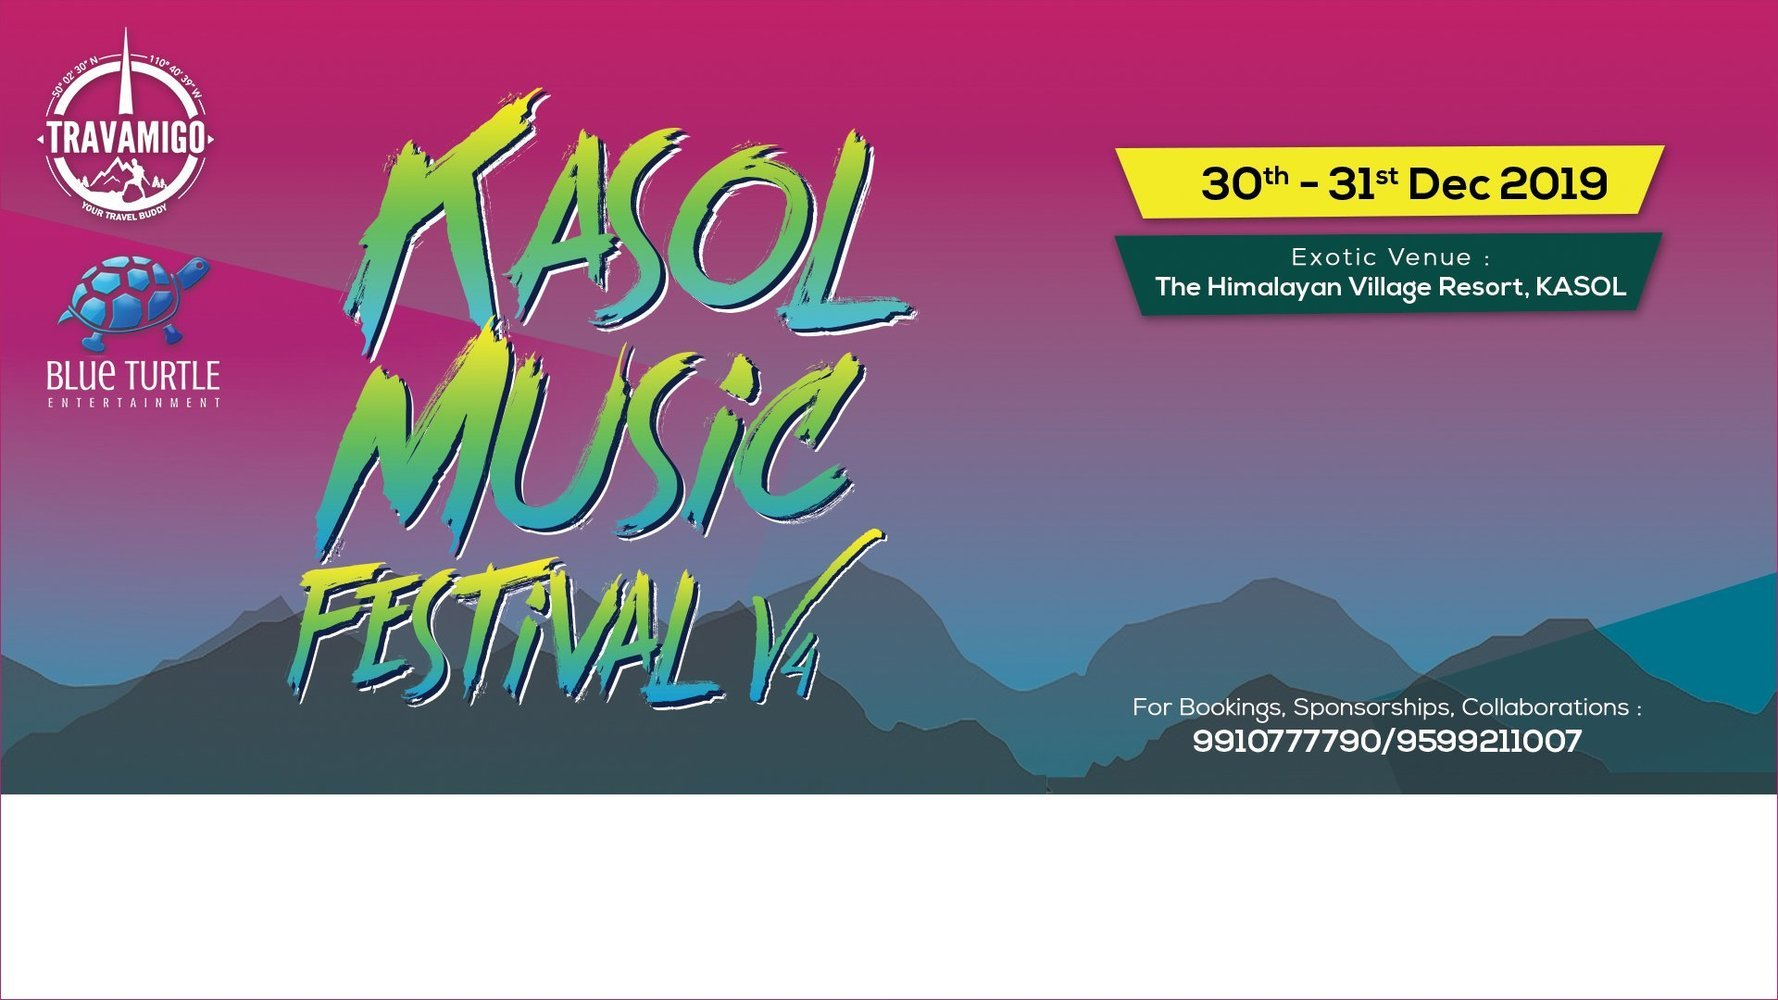 Kasol Music Festival V4 2019 New Year Party #KMFIndia - Tour